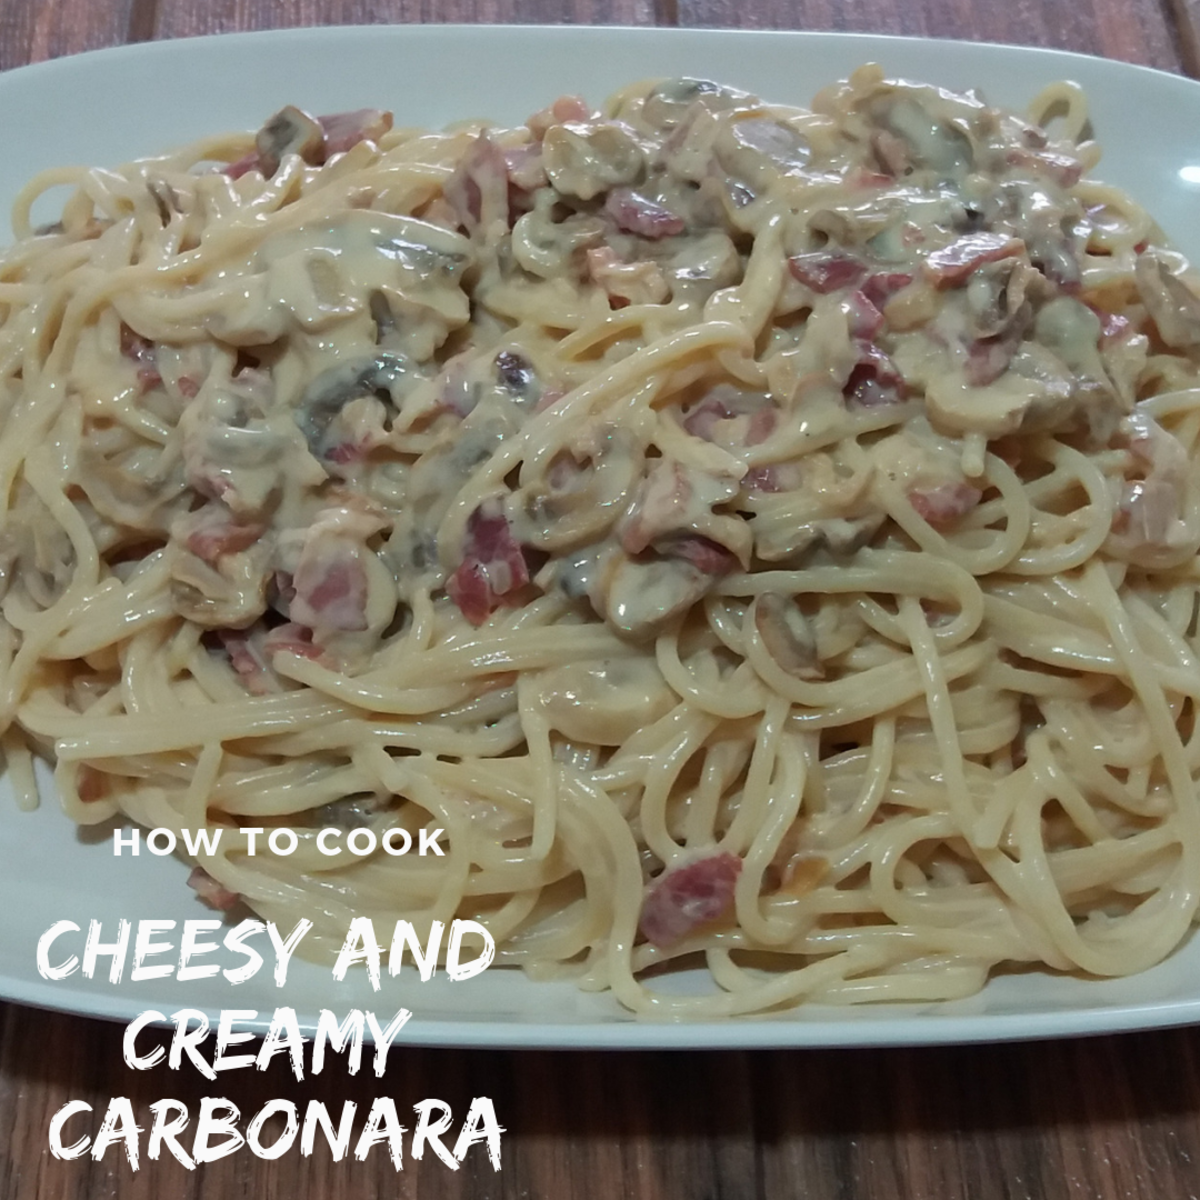 How to cook cheesy and creamy carbonara.